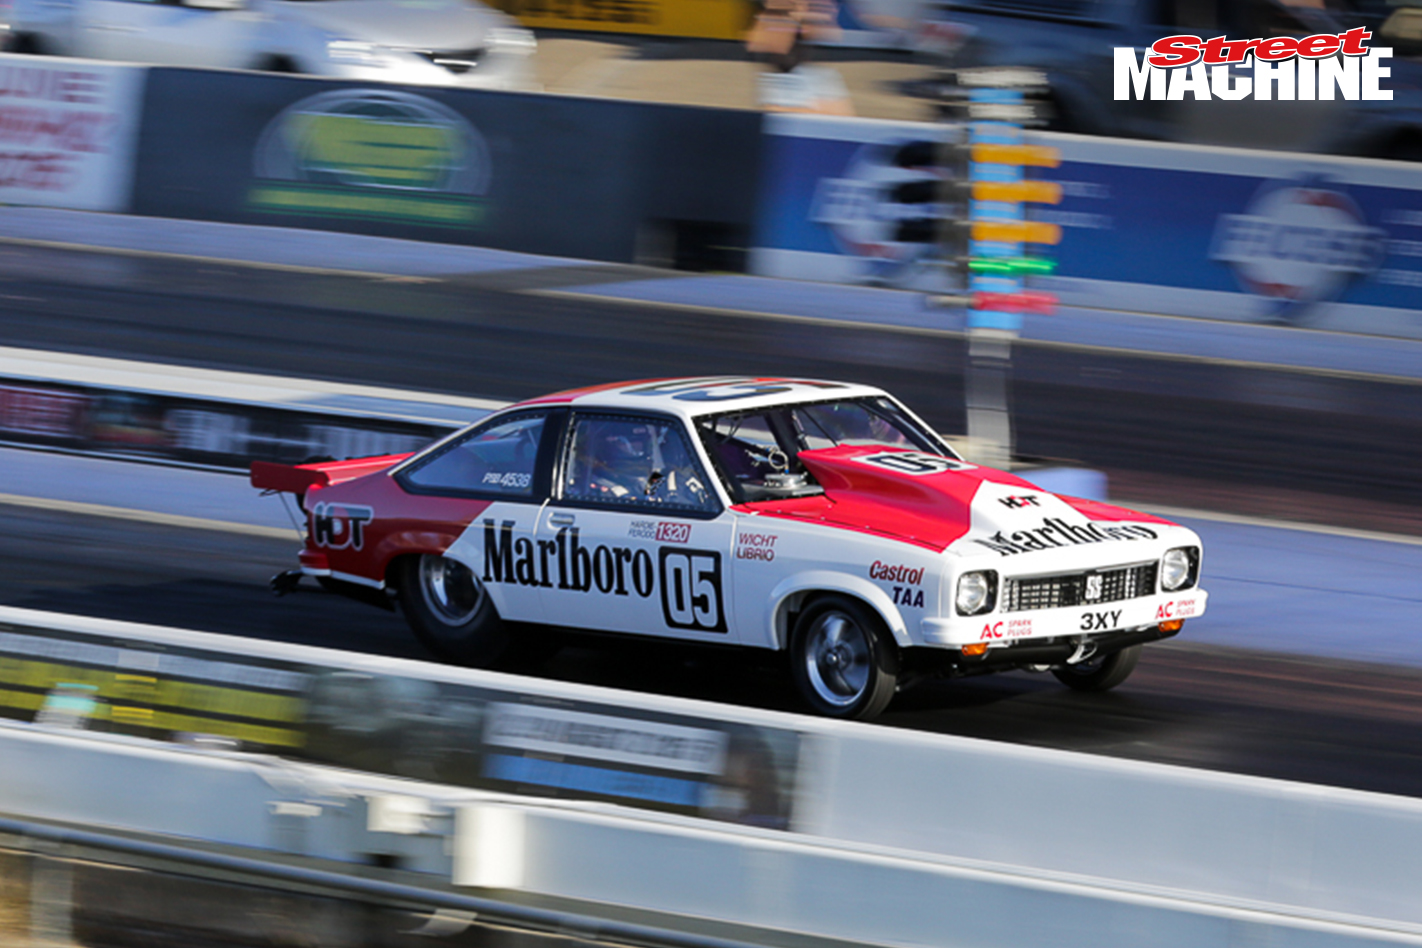 LX Torana Hatch Drag Race 3184 Nw